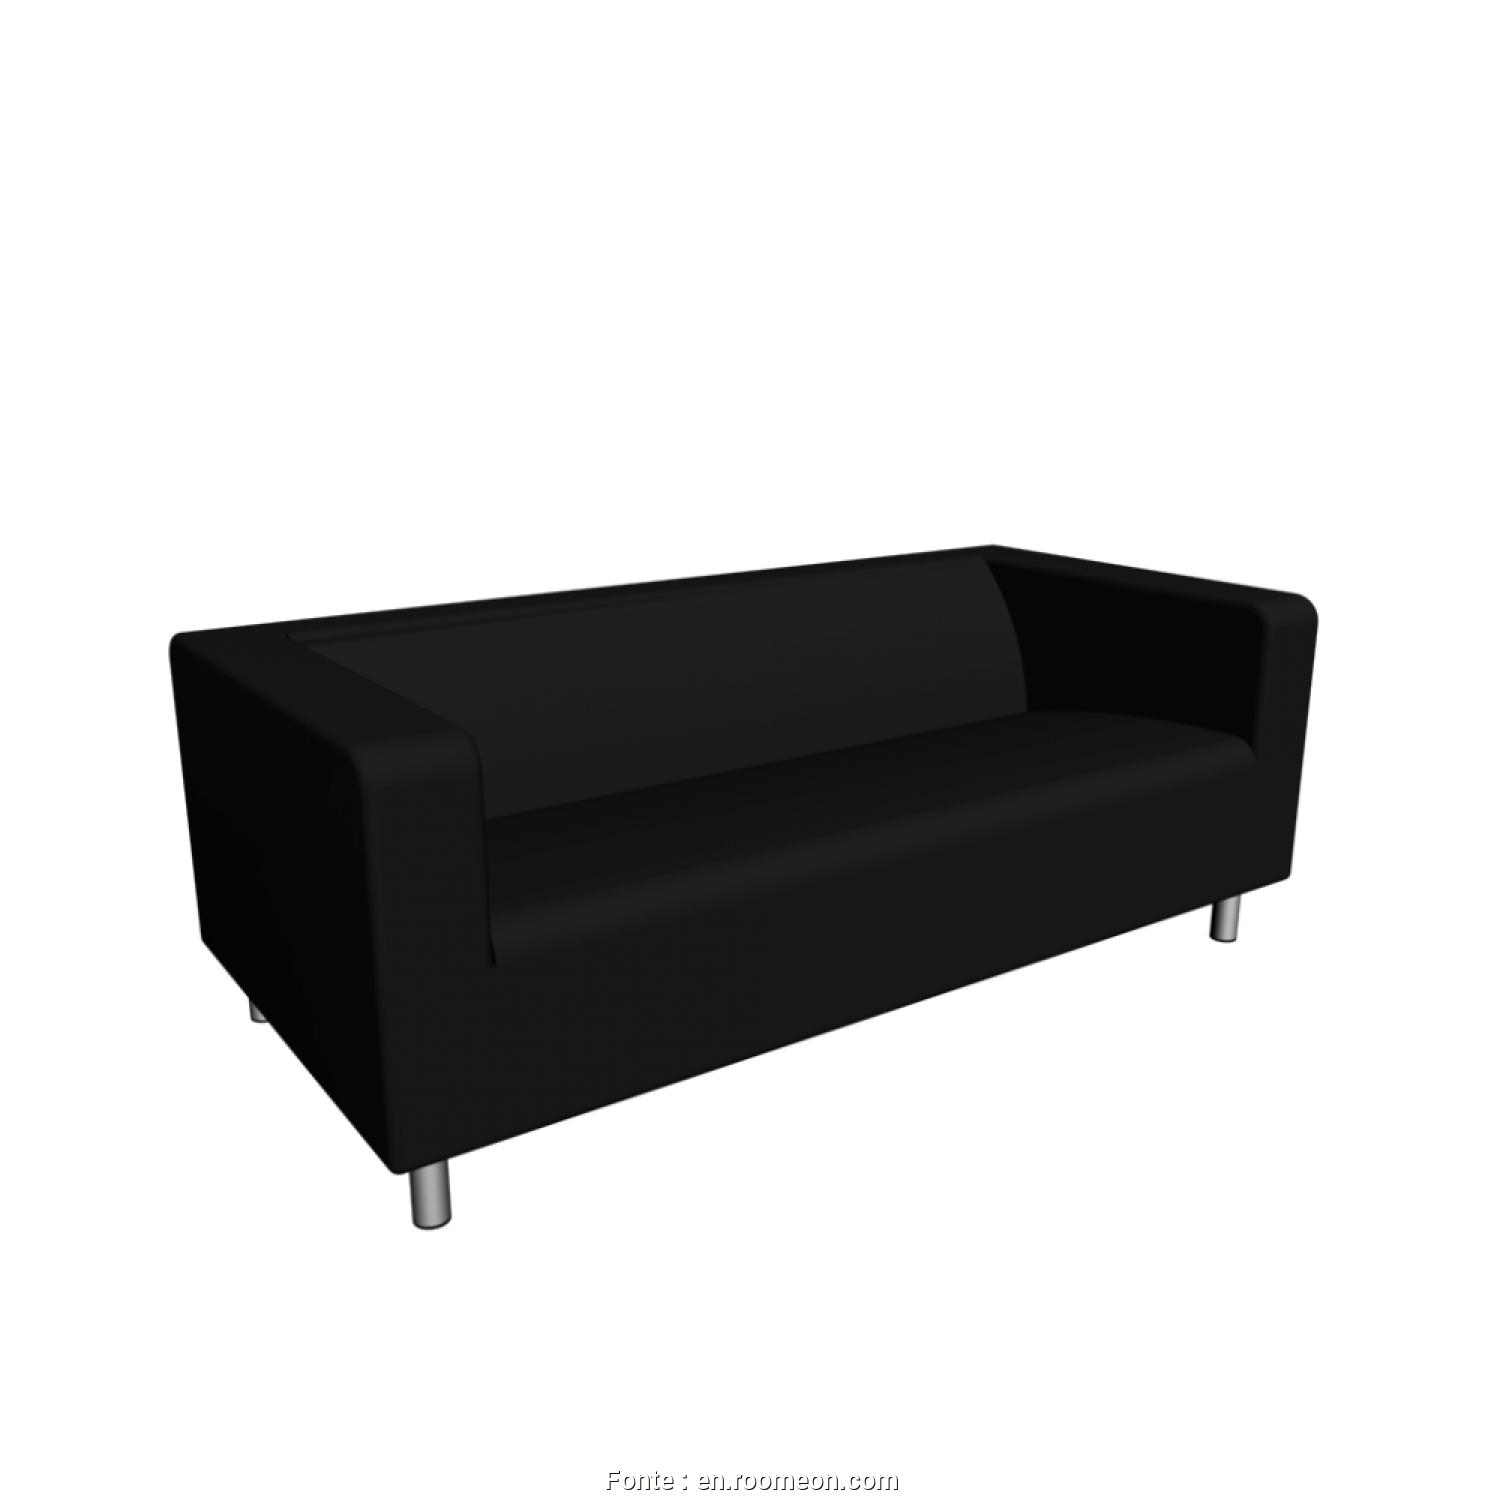 Ikea Klippan Loveseat Dimensions, Ideale KLIPPAN Loveseat,Granån Black, Design, Decorate Your Room In 3D